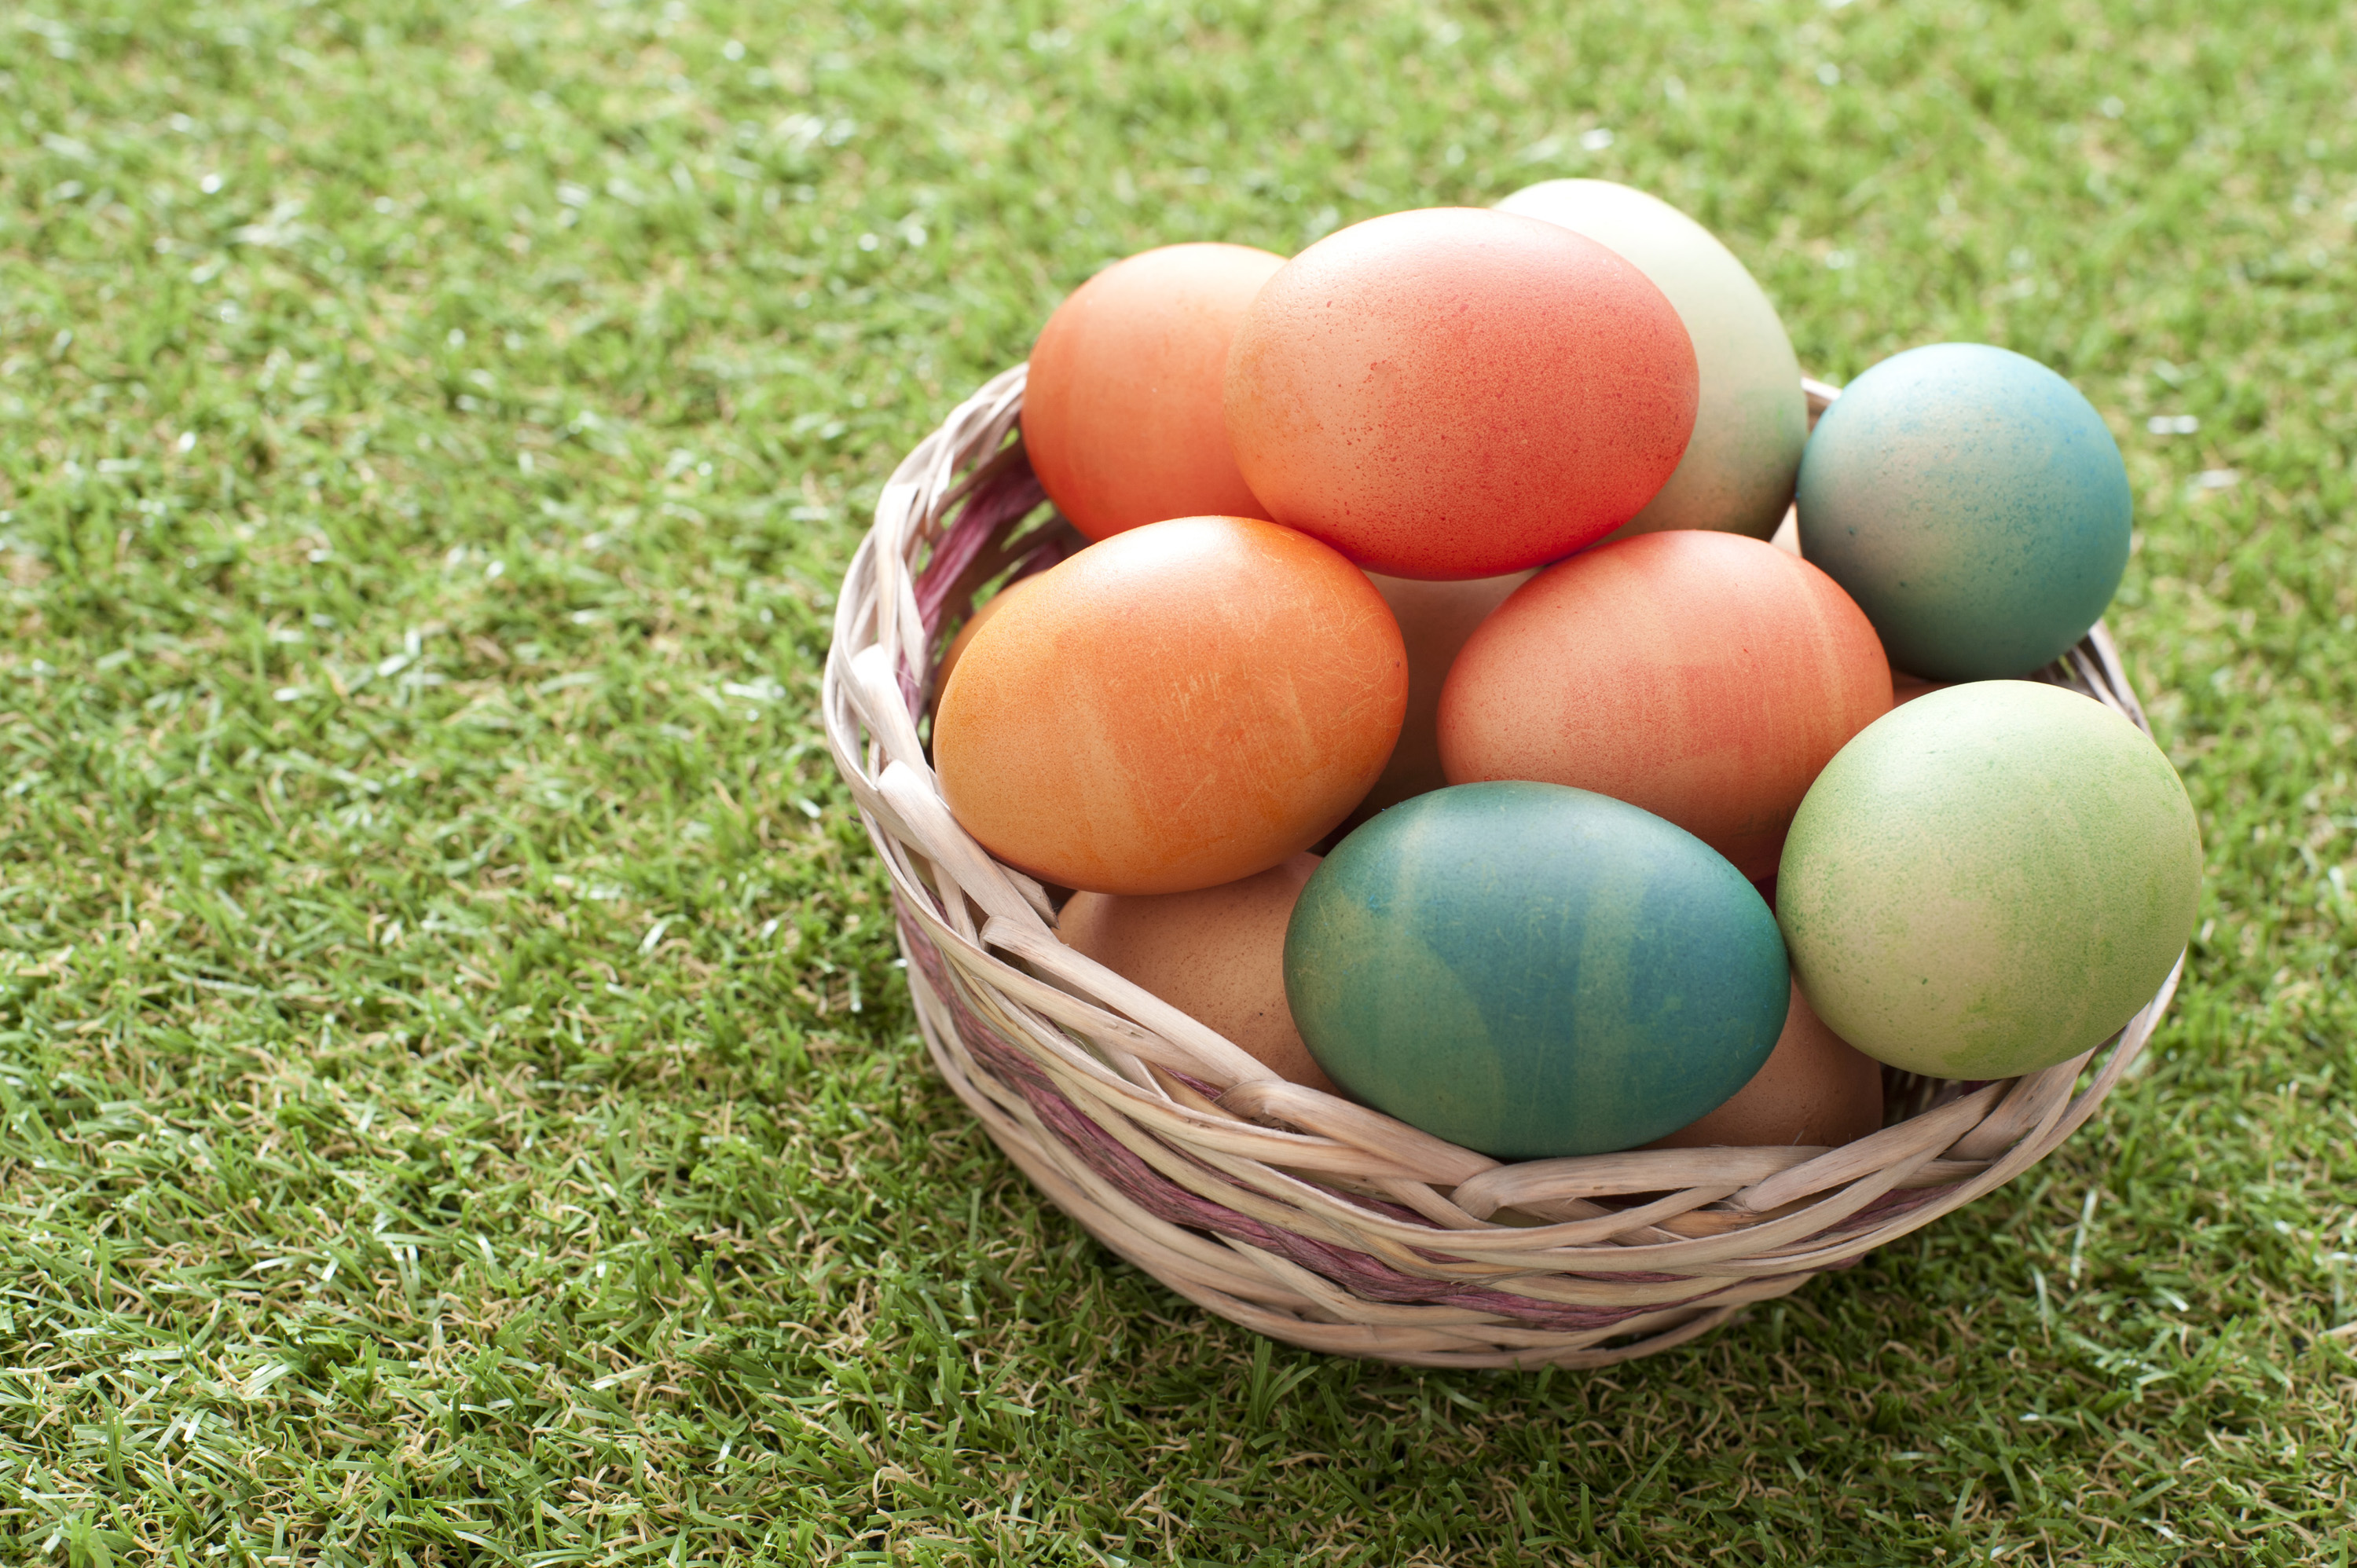 basket_of_coloured_eggs.jpg - Wicker basket of colorful dyed boiled homemade Easter eggs on green grass in spring ready for the kids egg hunt tradition